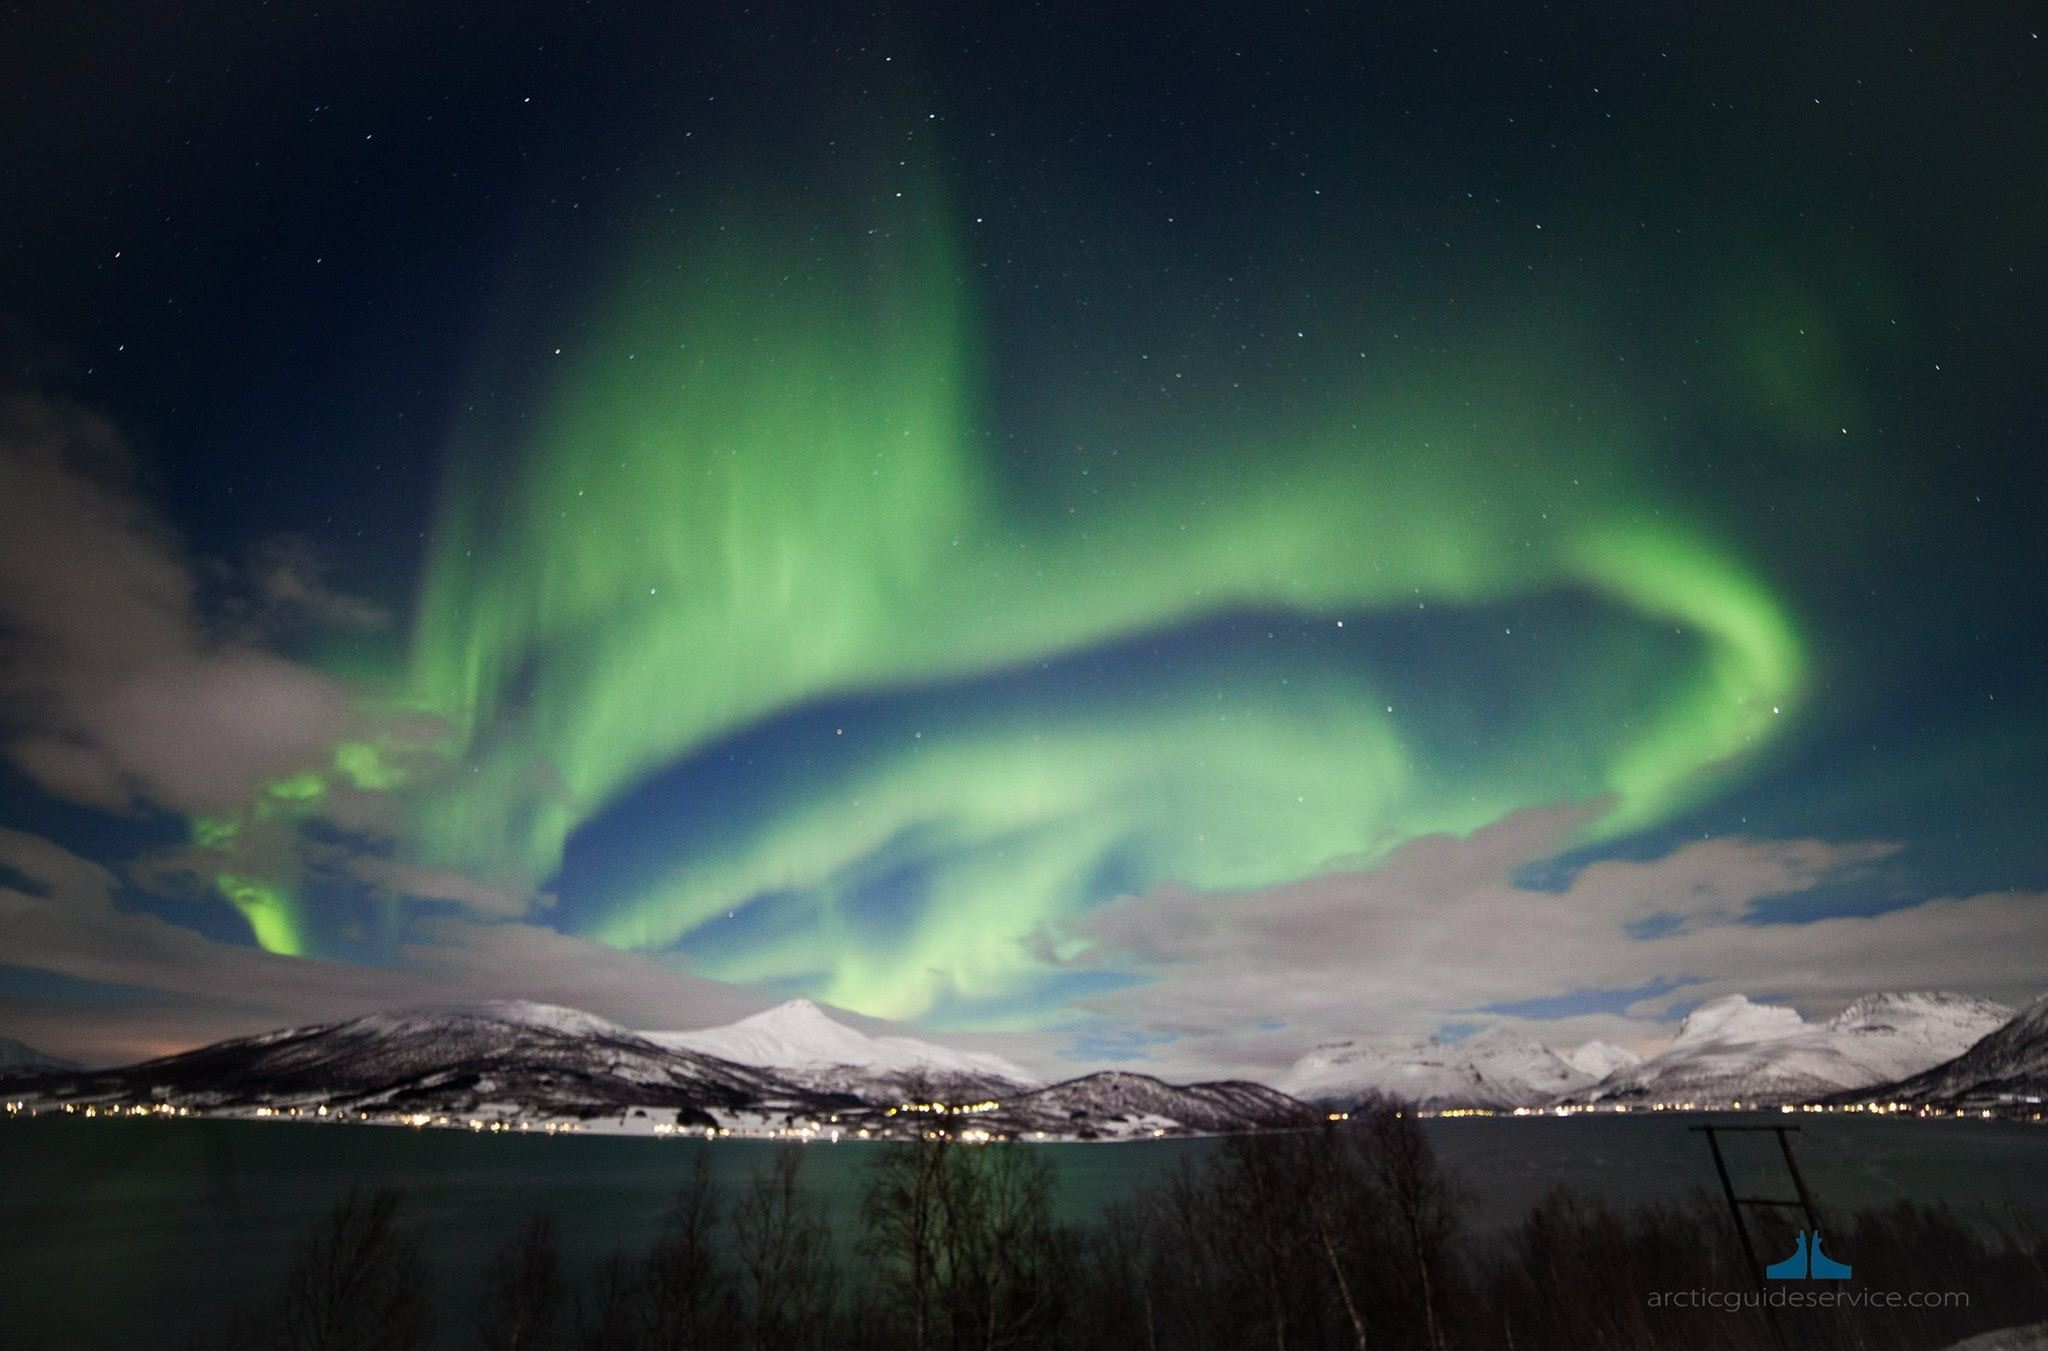 Northern Lights Photo Tour - Arctic Guide Service